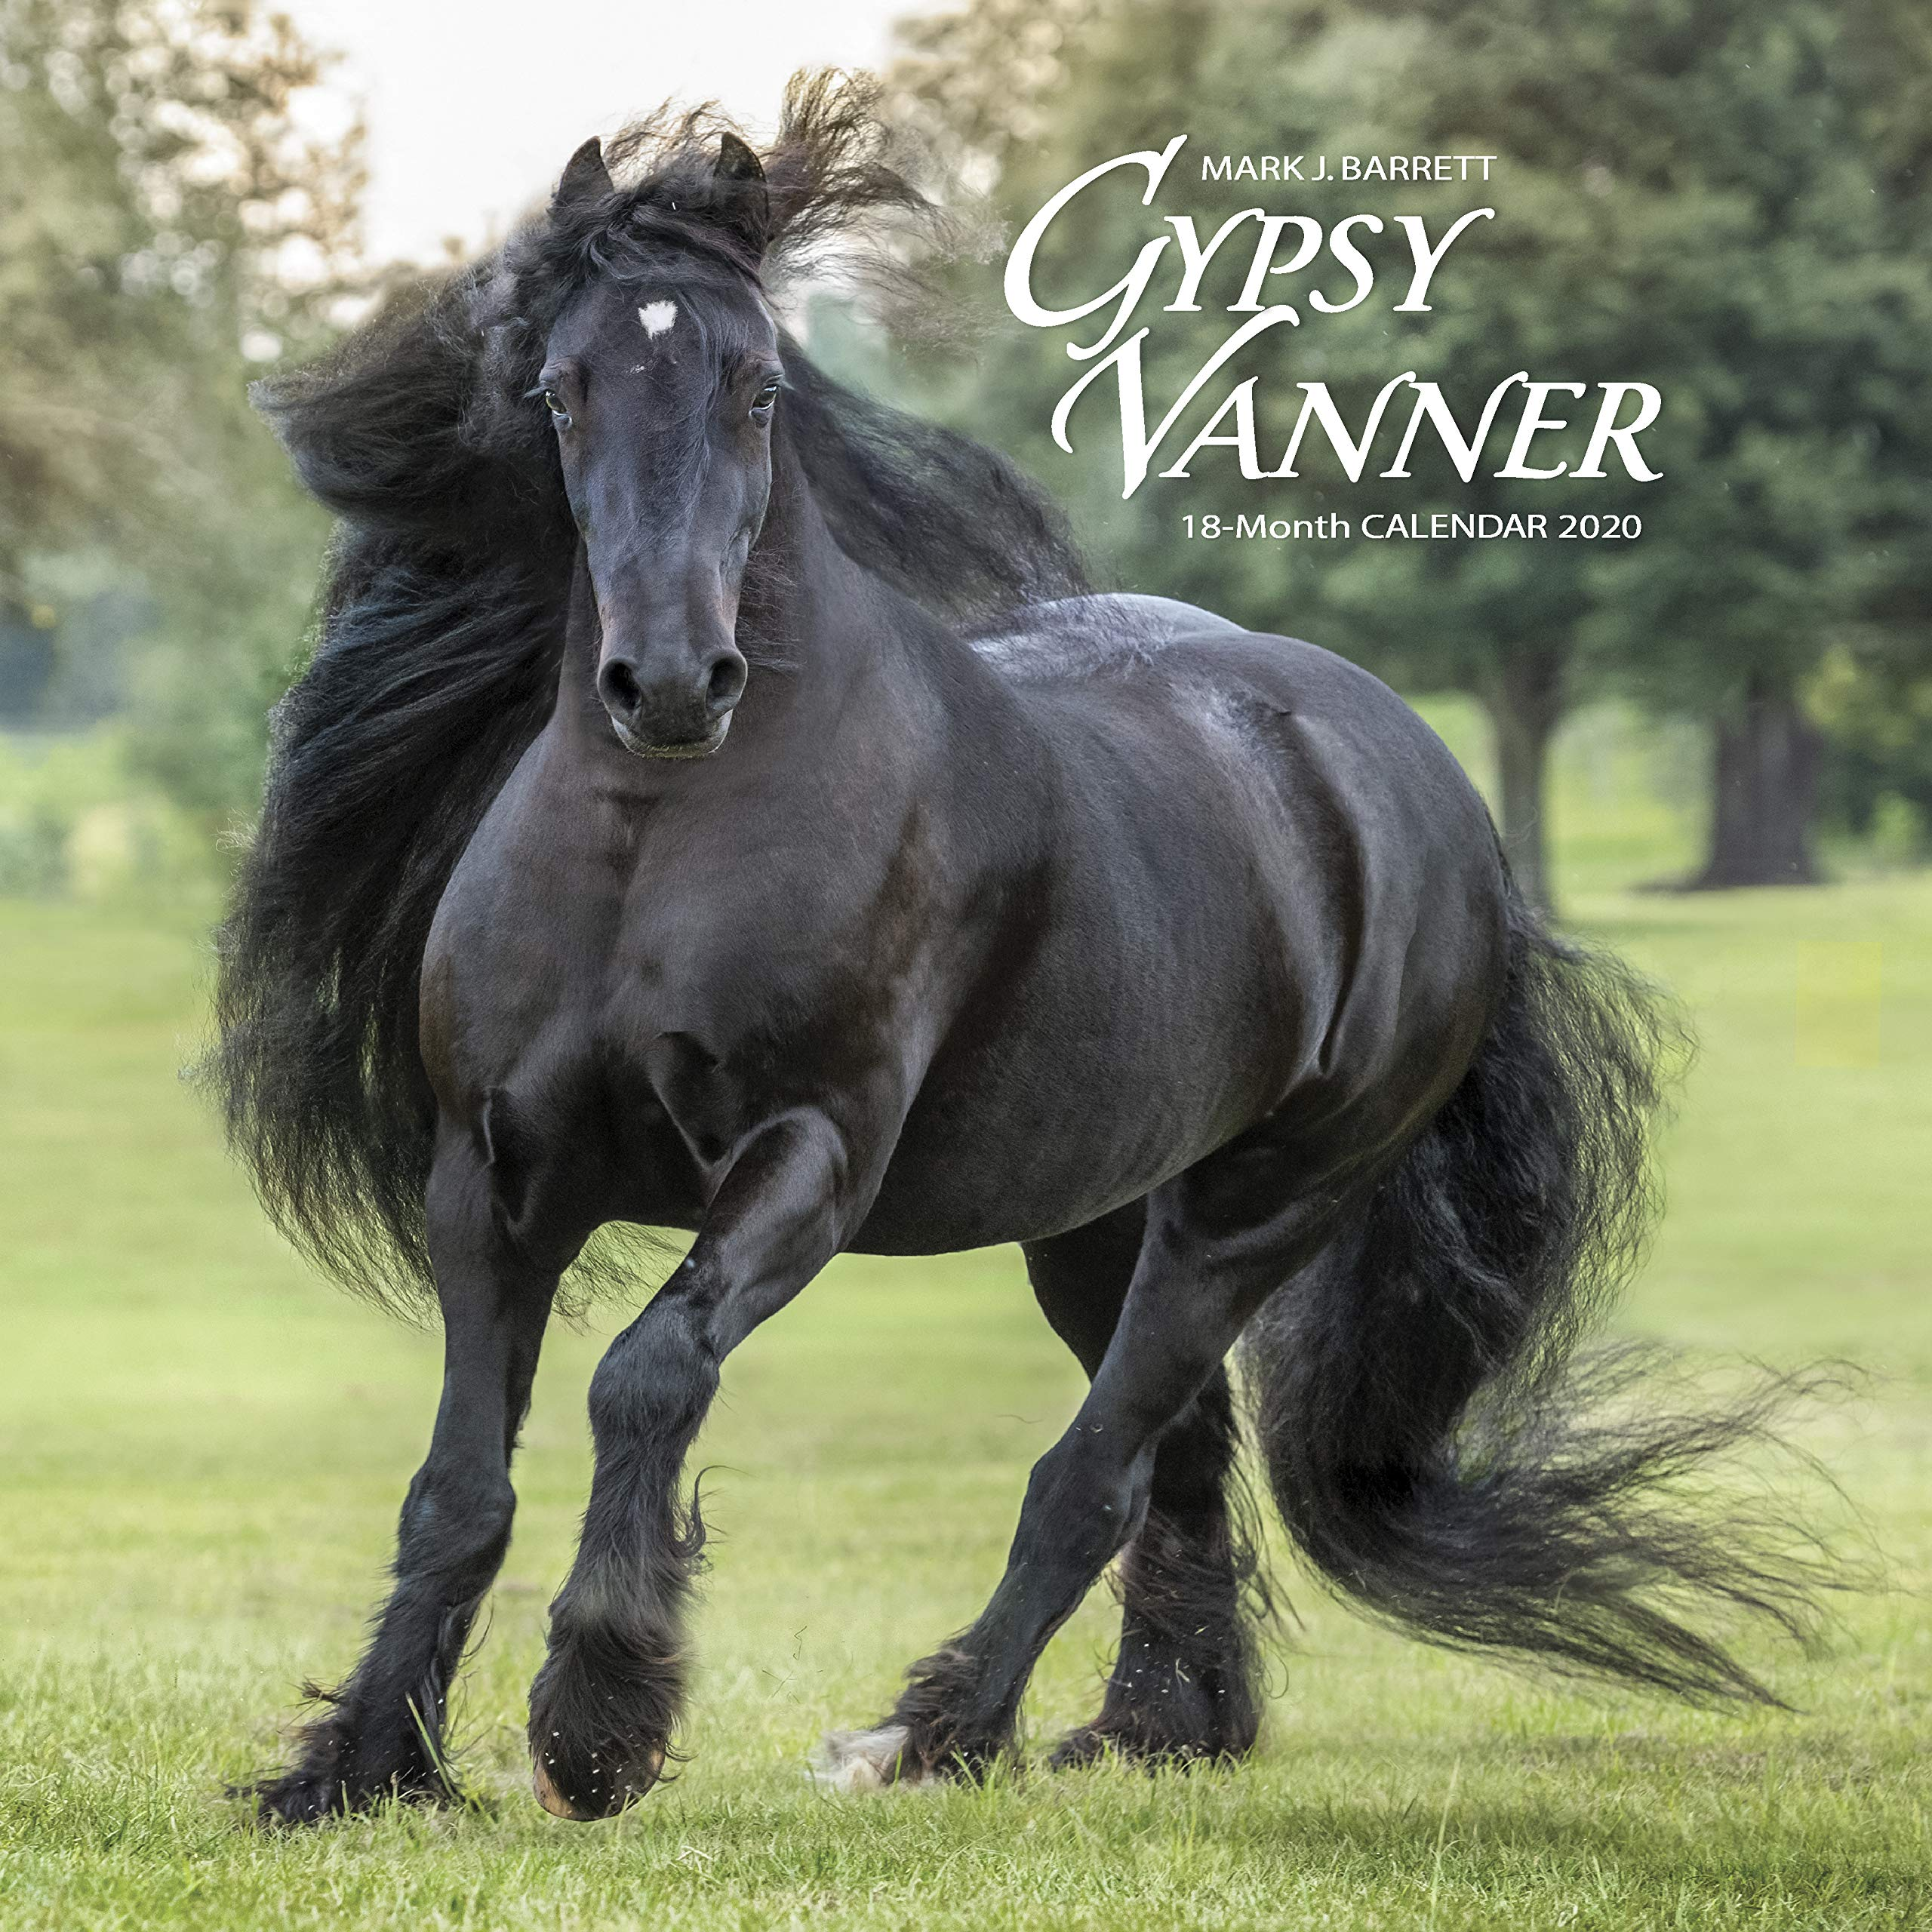 Horse Calendar 2020 Gypsy Vanner Horse 2020 Wall Calendar: Willow Creek Press